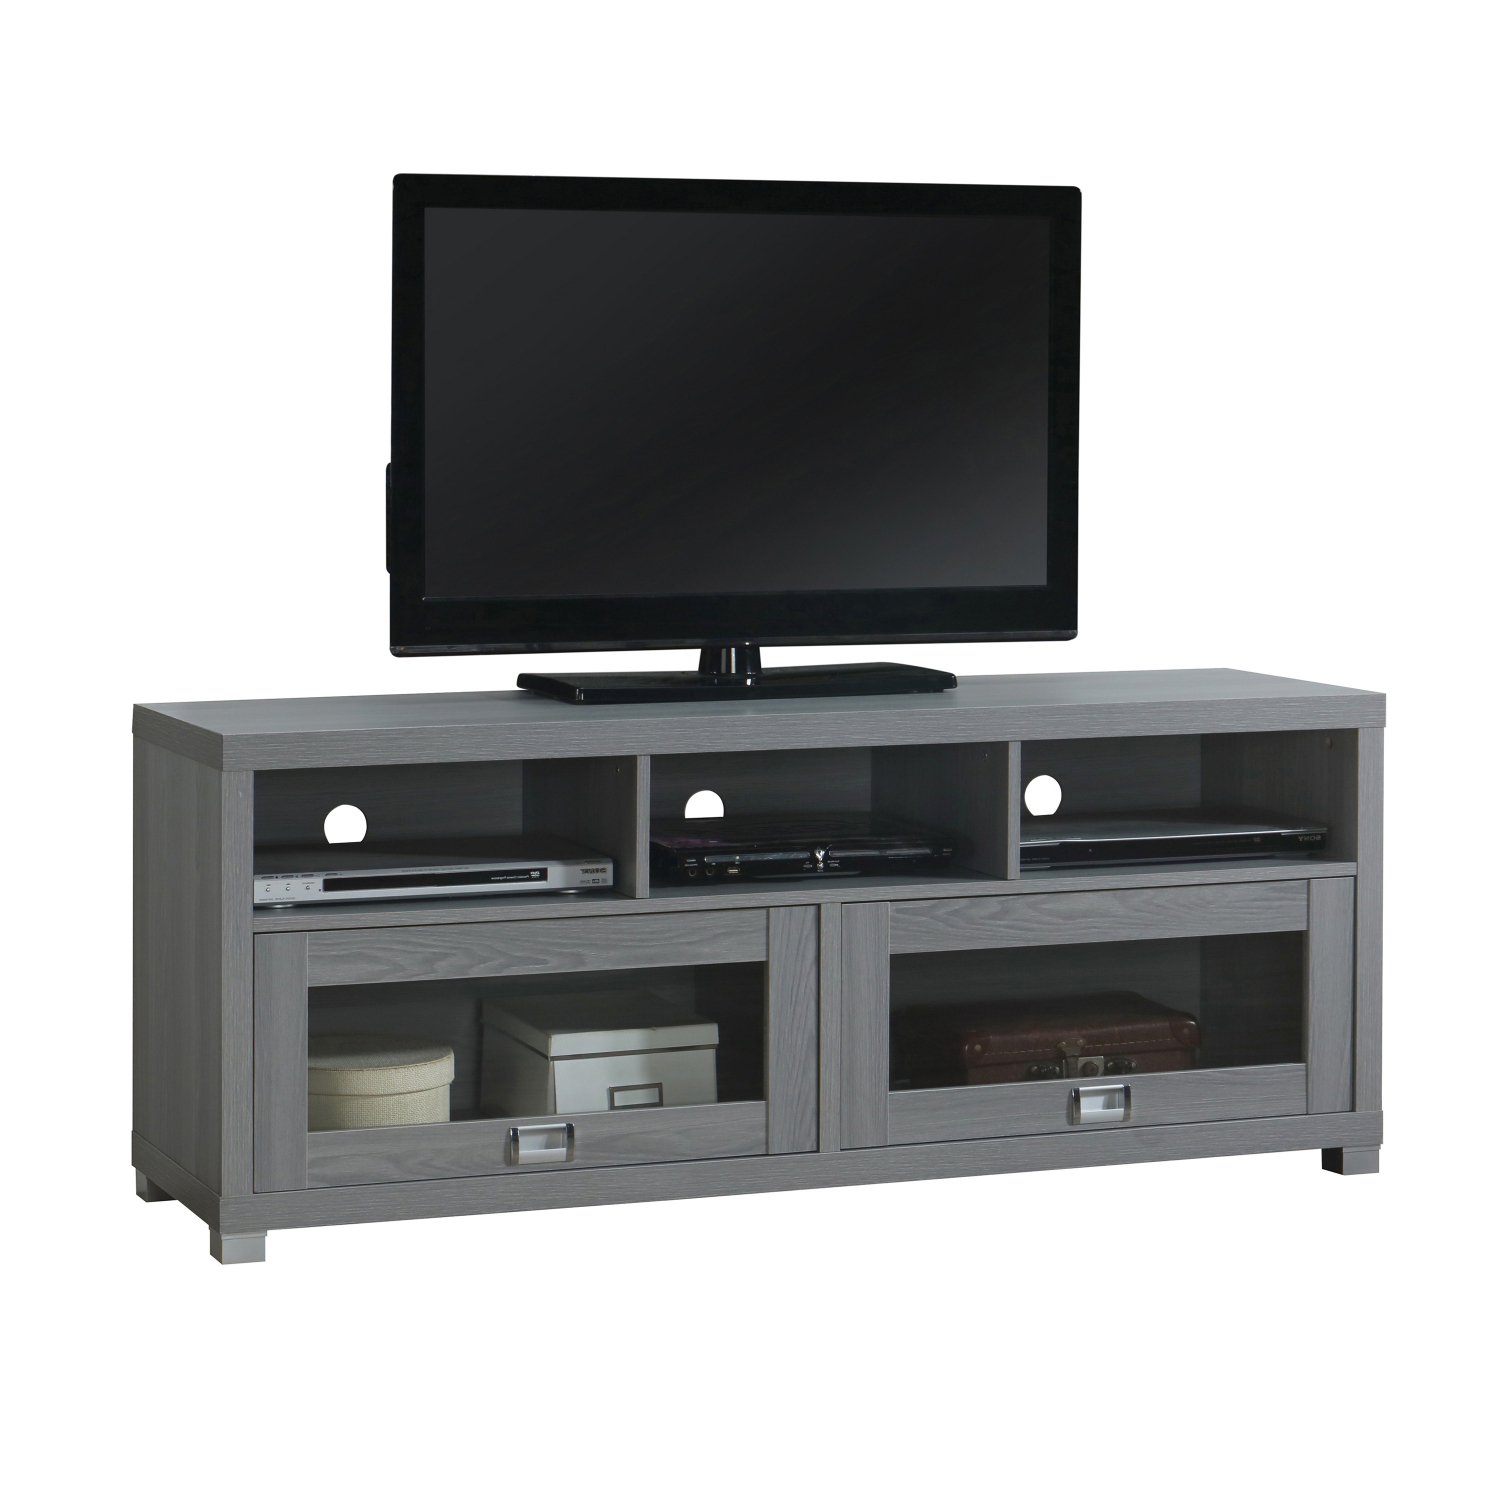 """Tv Stand 75 Inch Flat Screen Home Furniture Entertainment Regarding Most Recent Chrissy Tv Stands For Tvs Up To 75"""" (View 9 of 25)"""